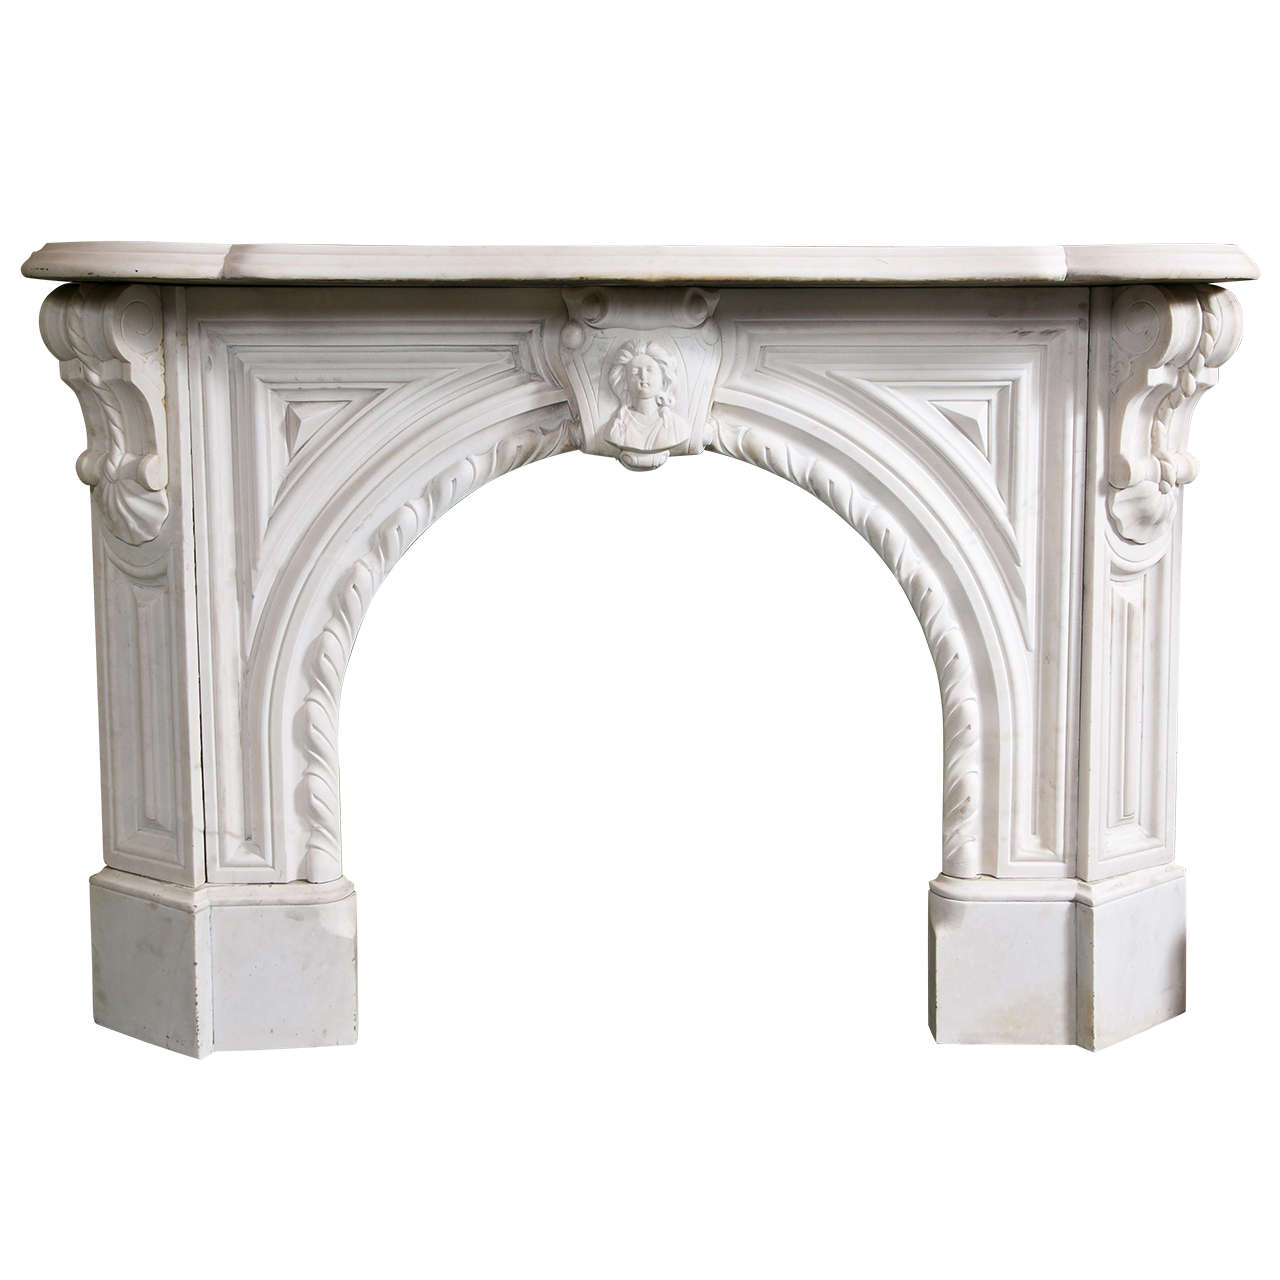 Victorian White Marble Arched Mantel At 1stdibs